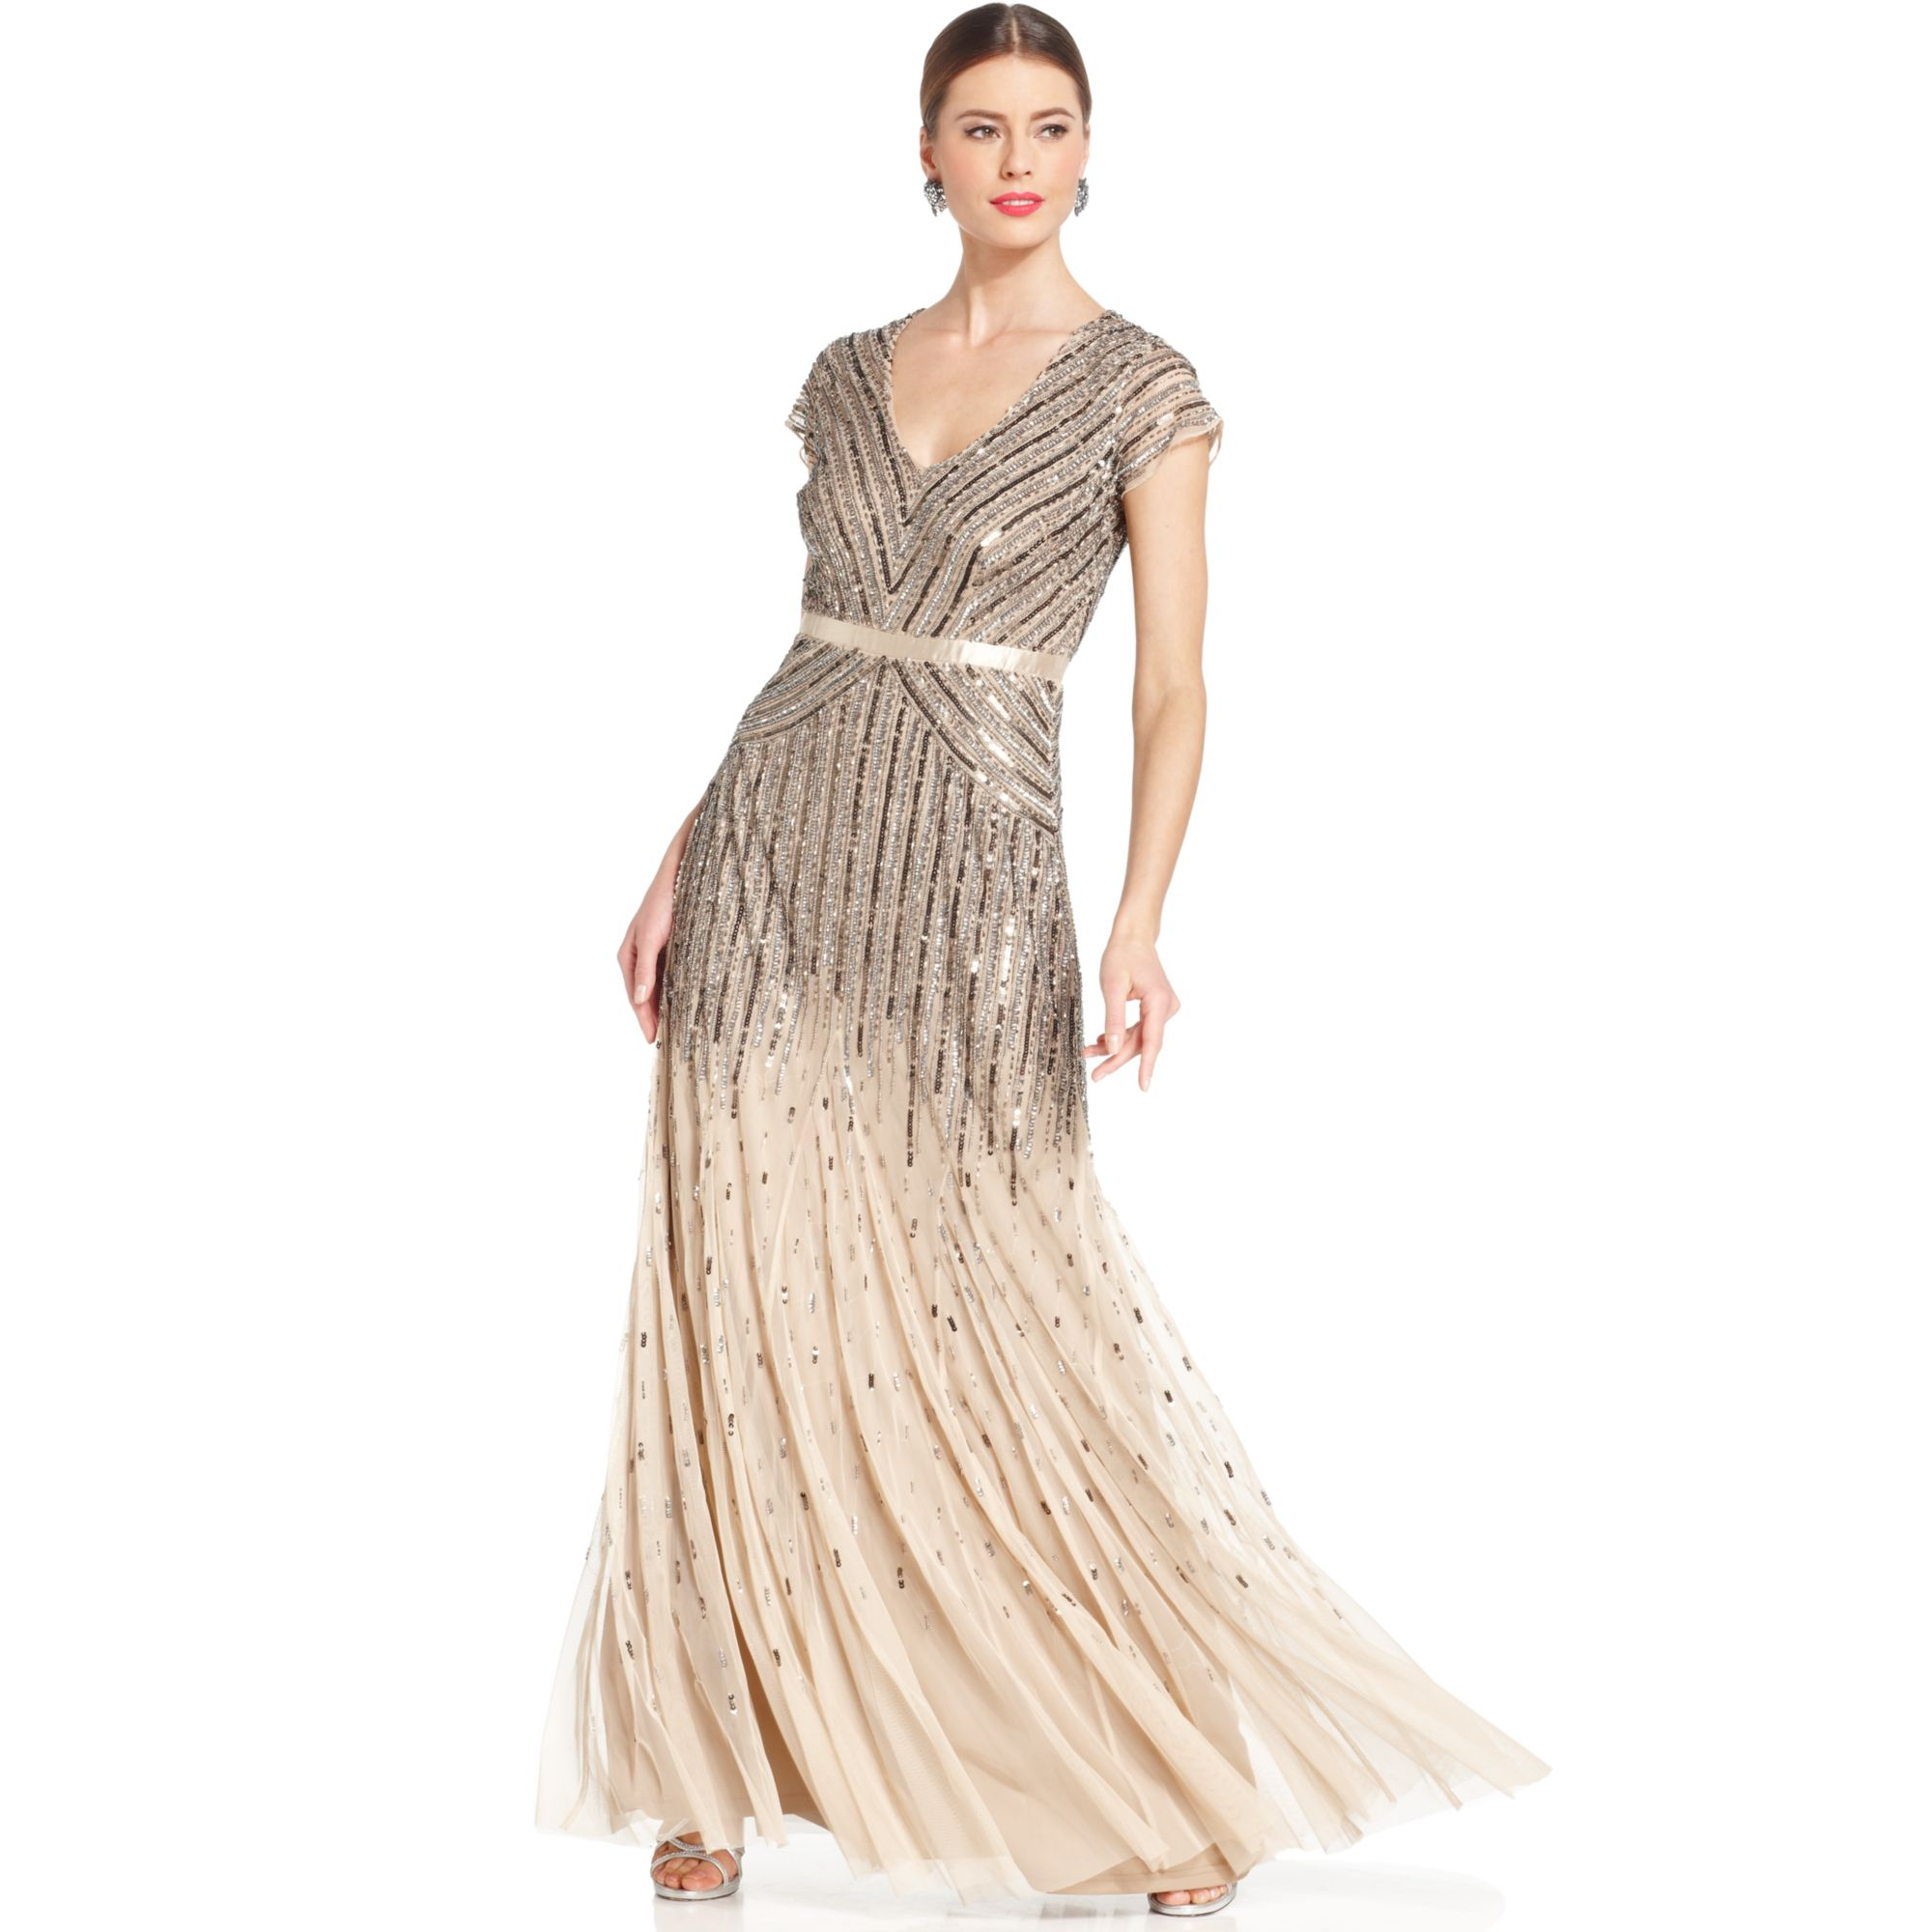 Lyst - Adrianna Papell Capsleeve Beaded Sequined Gown in Natural